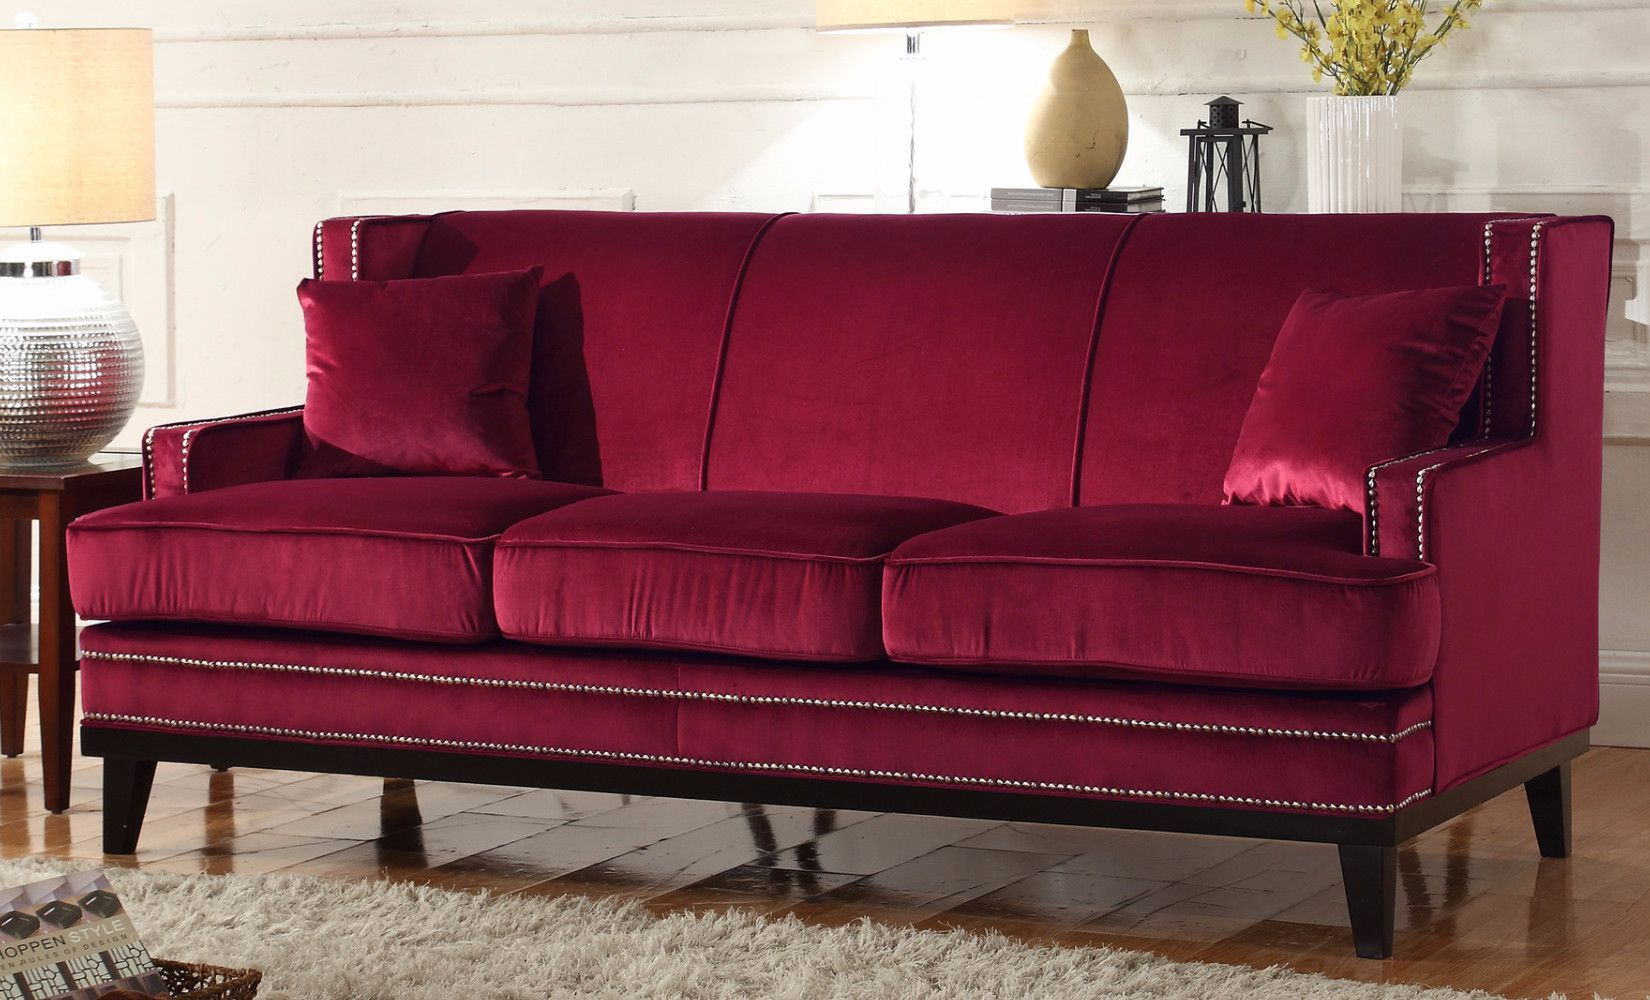 Contemporary Sofa With Wood Trim Sure Fit Stretch Suede Slipcover Modern Soft Velvet Nailhead Details Red